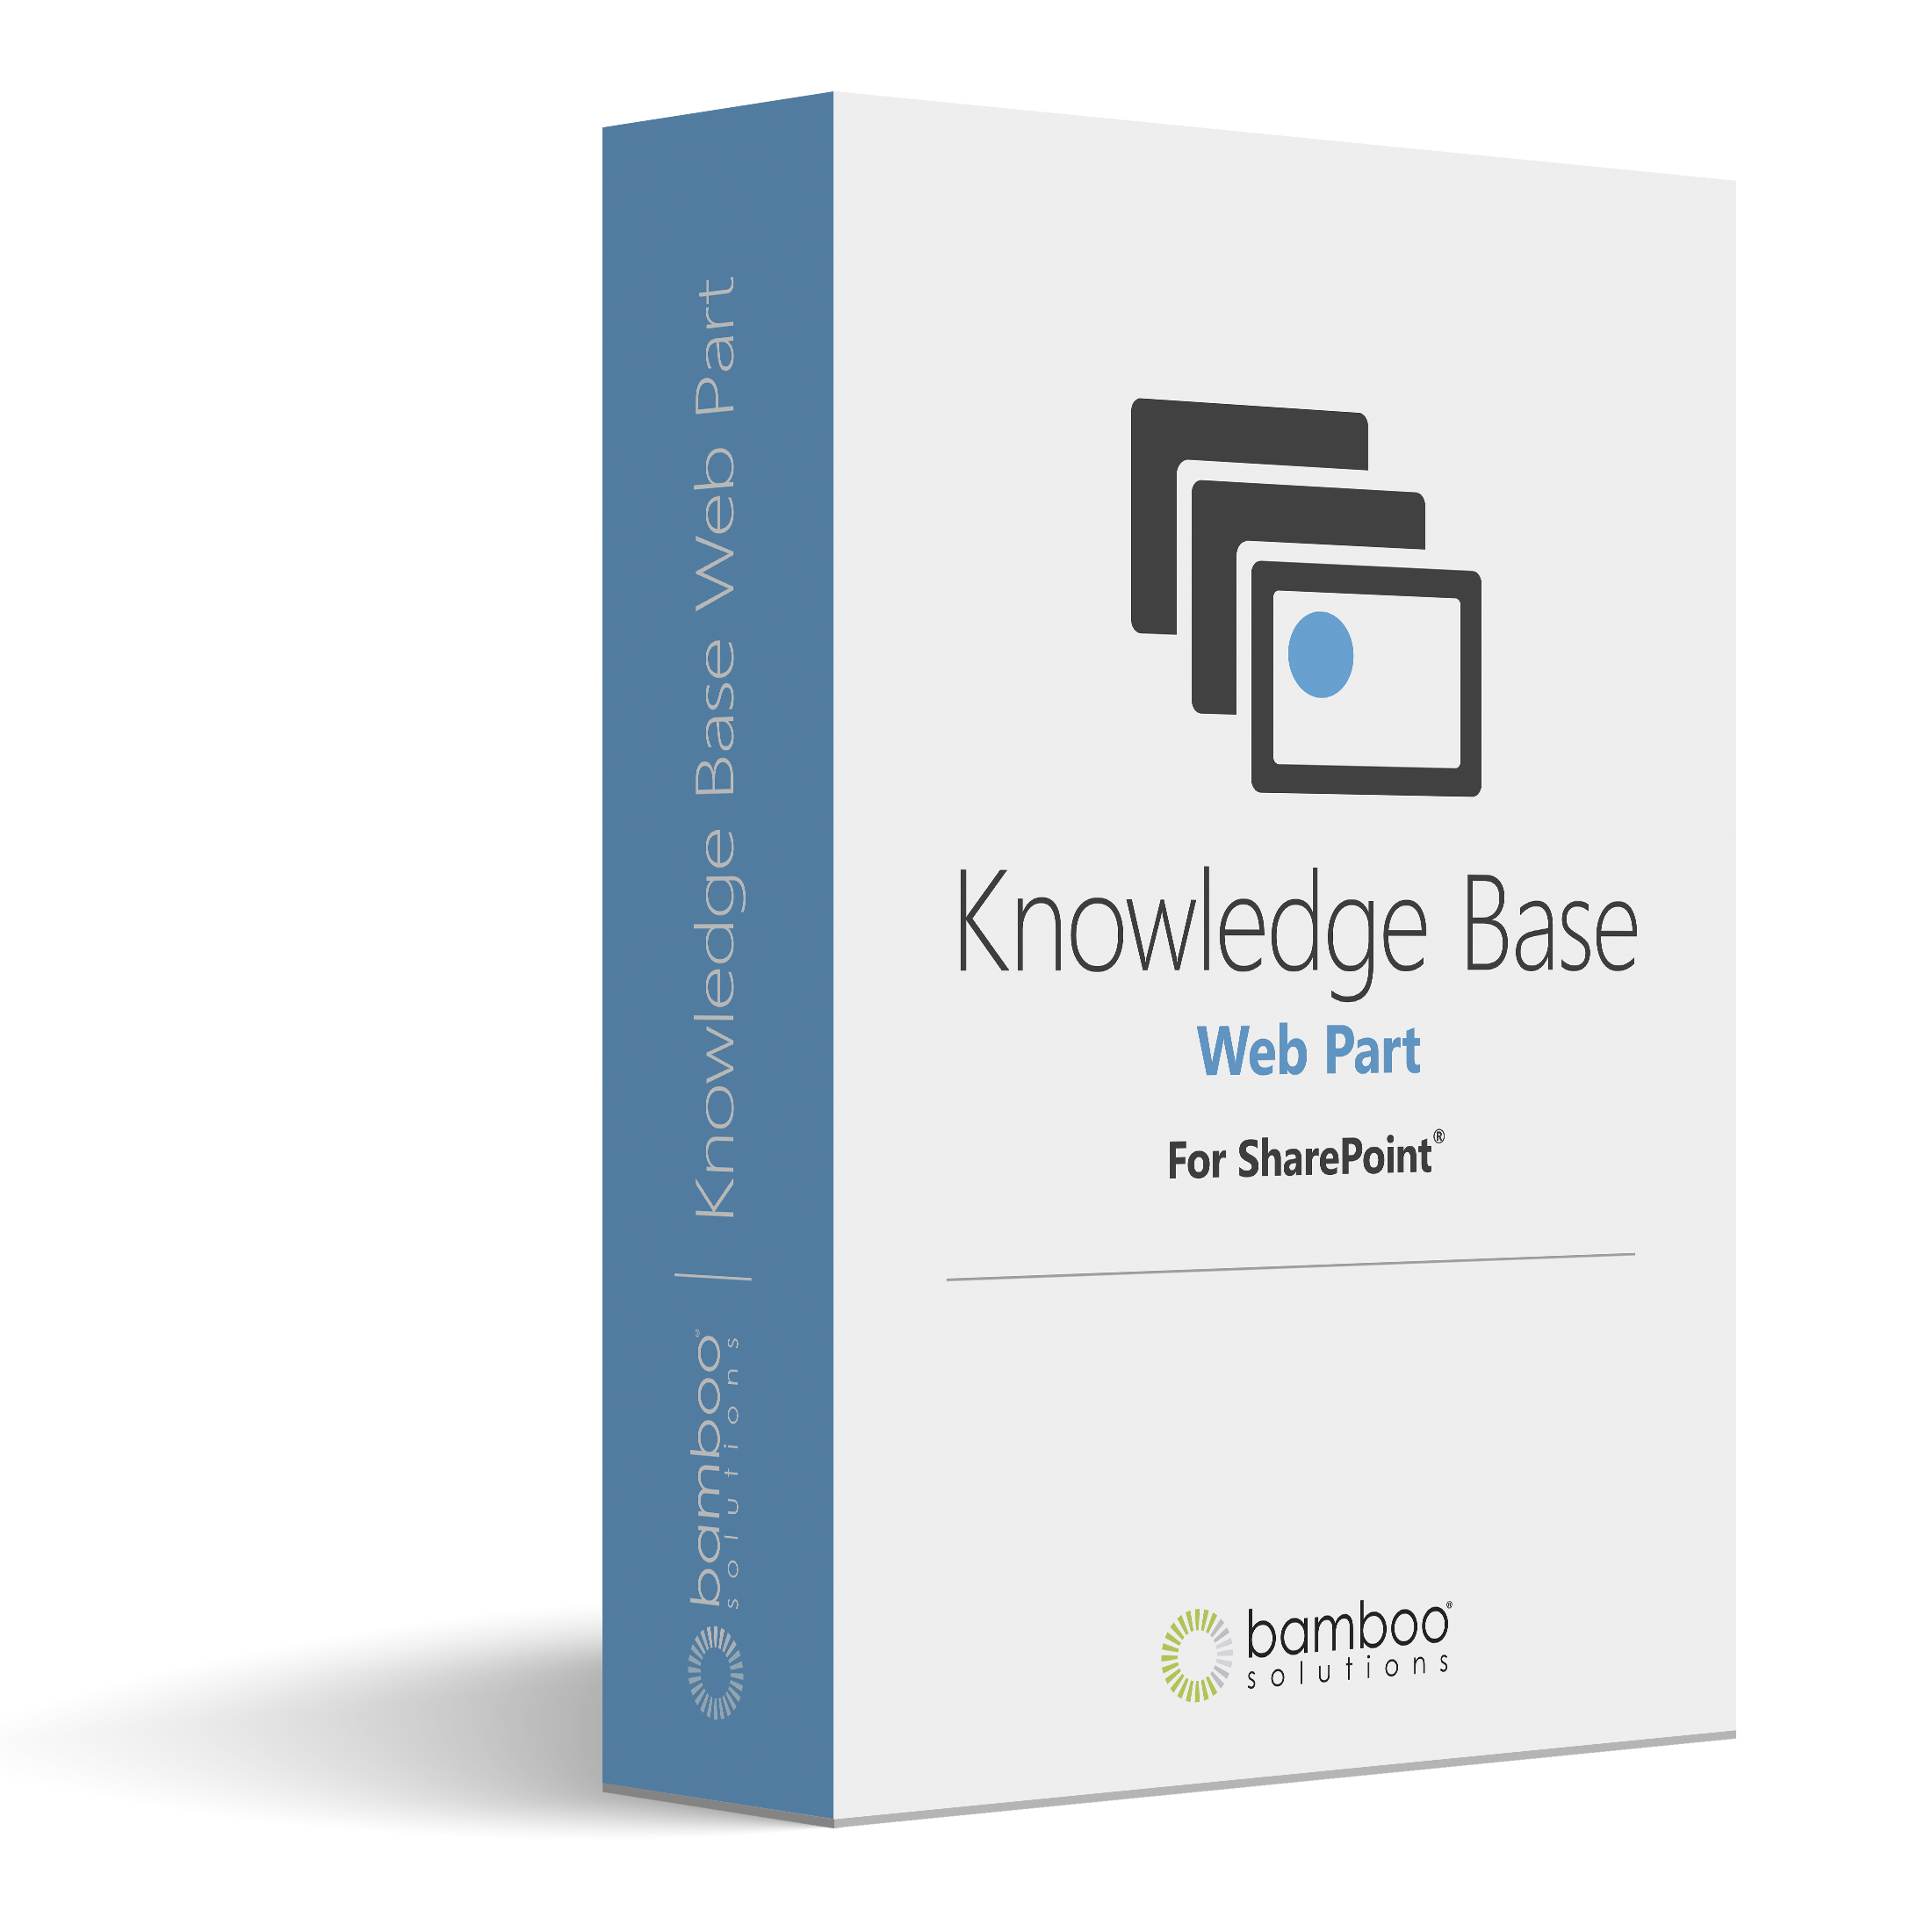 Knowledge Base Web Part